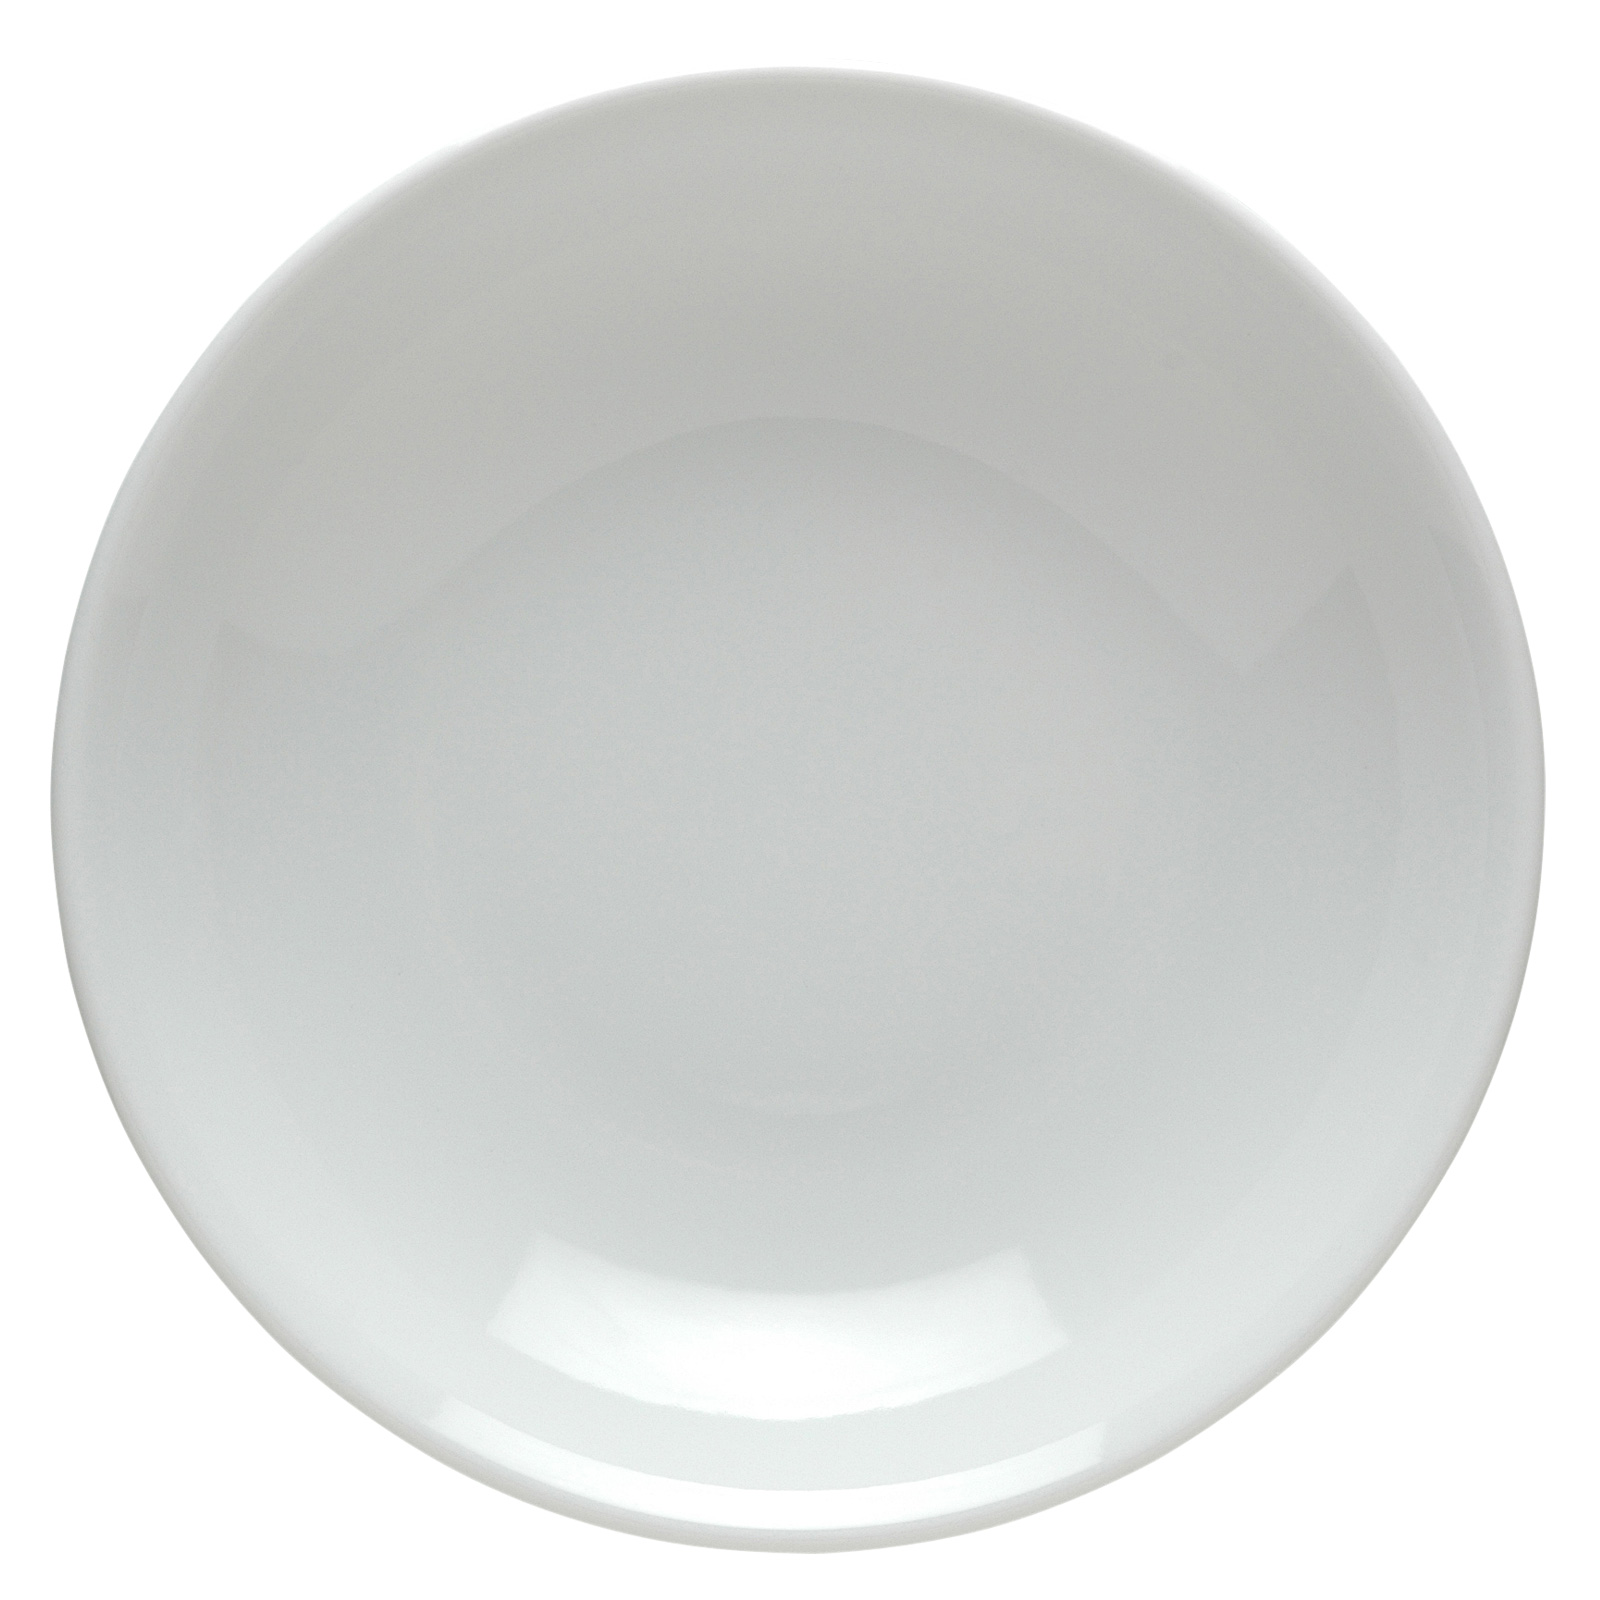 Hotel Flat Plate Large